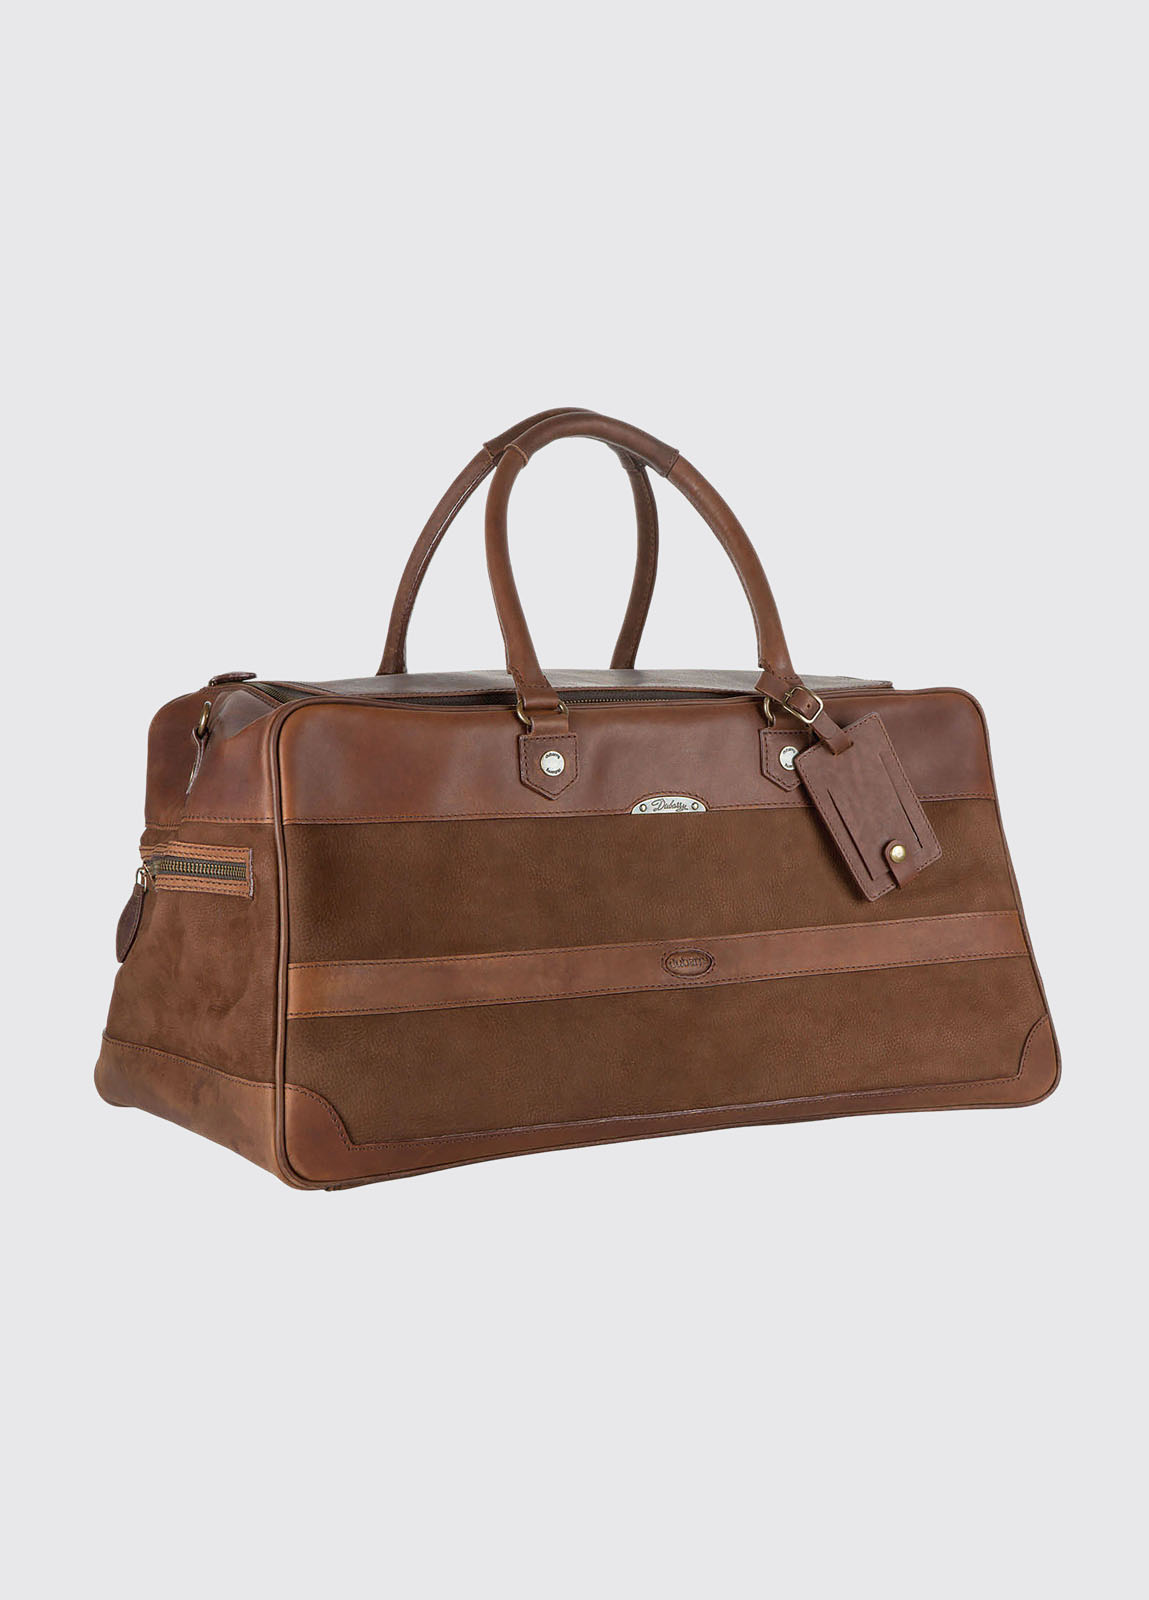 Durrow Leather Weekend Bag - Walnut